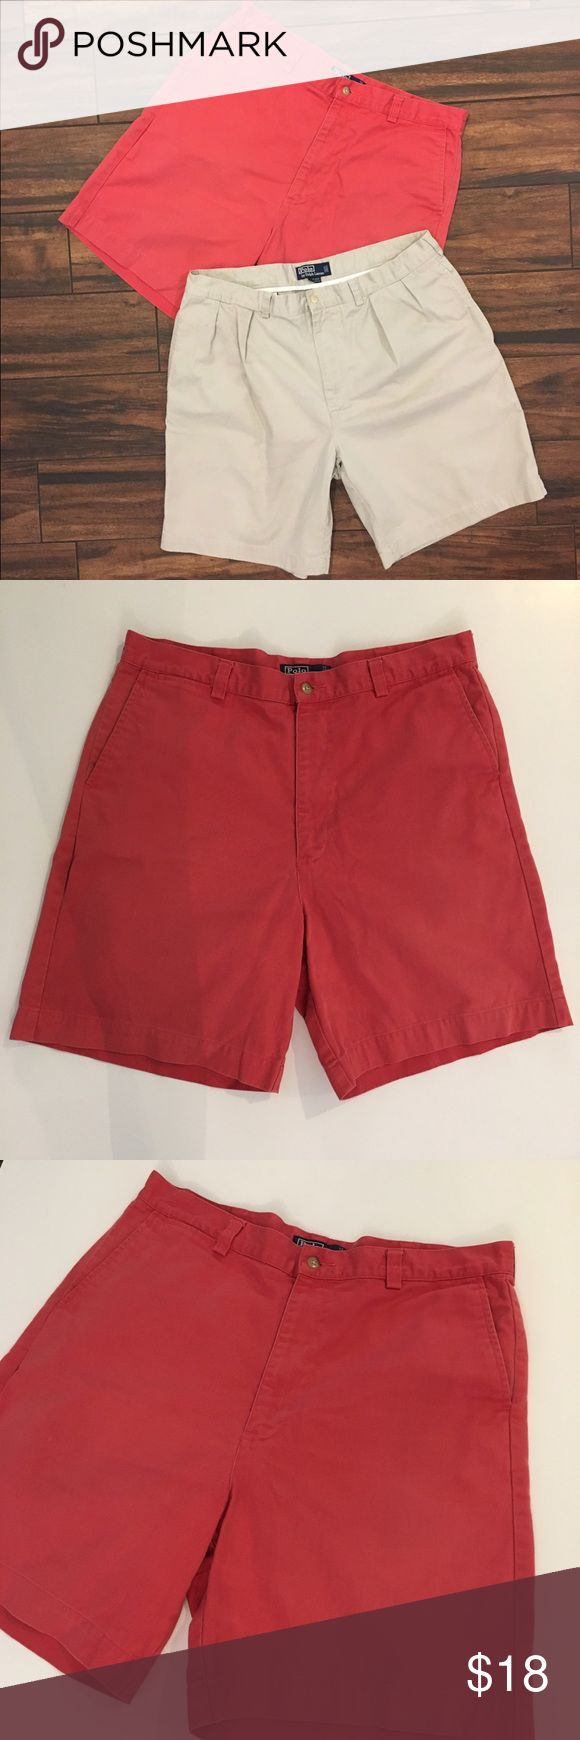 2 Pairs of Polo Ralph Lauren Shorts 2 pairs of classic Polo by Ralph Lauren shorts. There are no rips, stains, or tears on the salmon colored shorts. The last two photos show minor wear on the last pair of shorts. Both size 38. Polo by Ralph Lauren Shorts